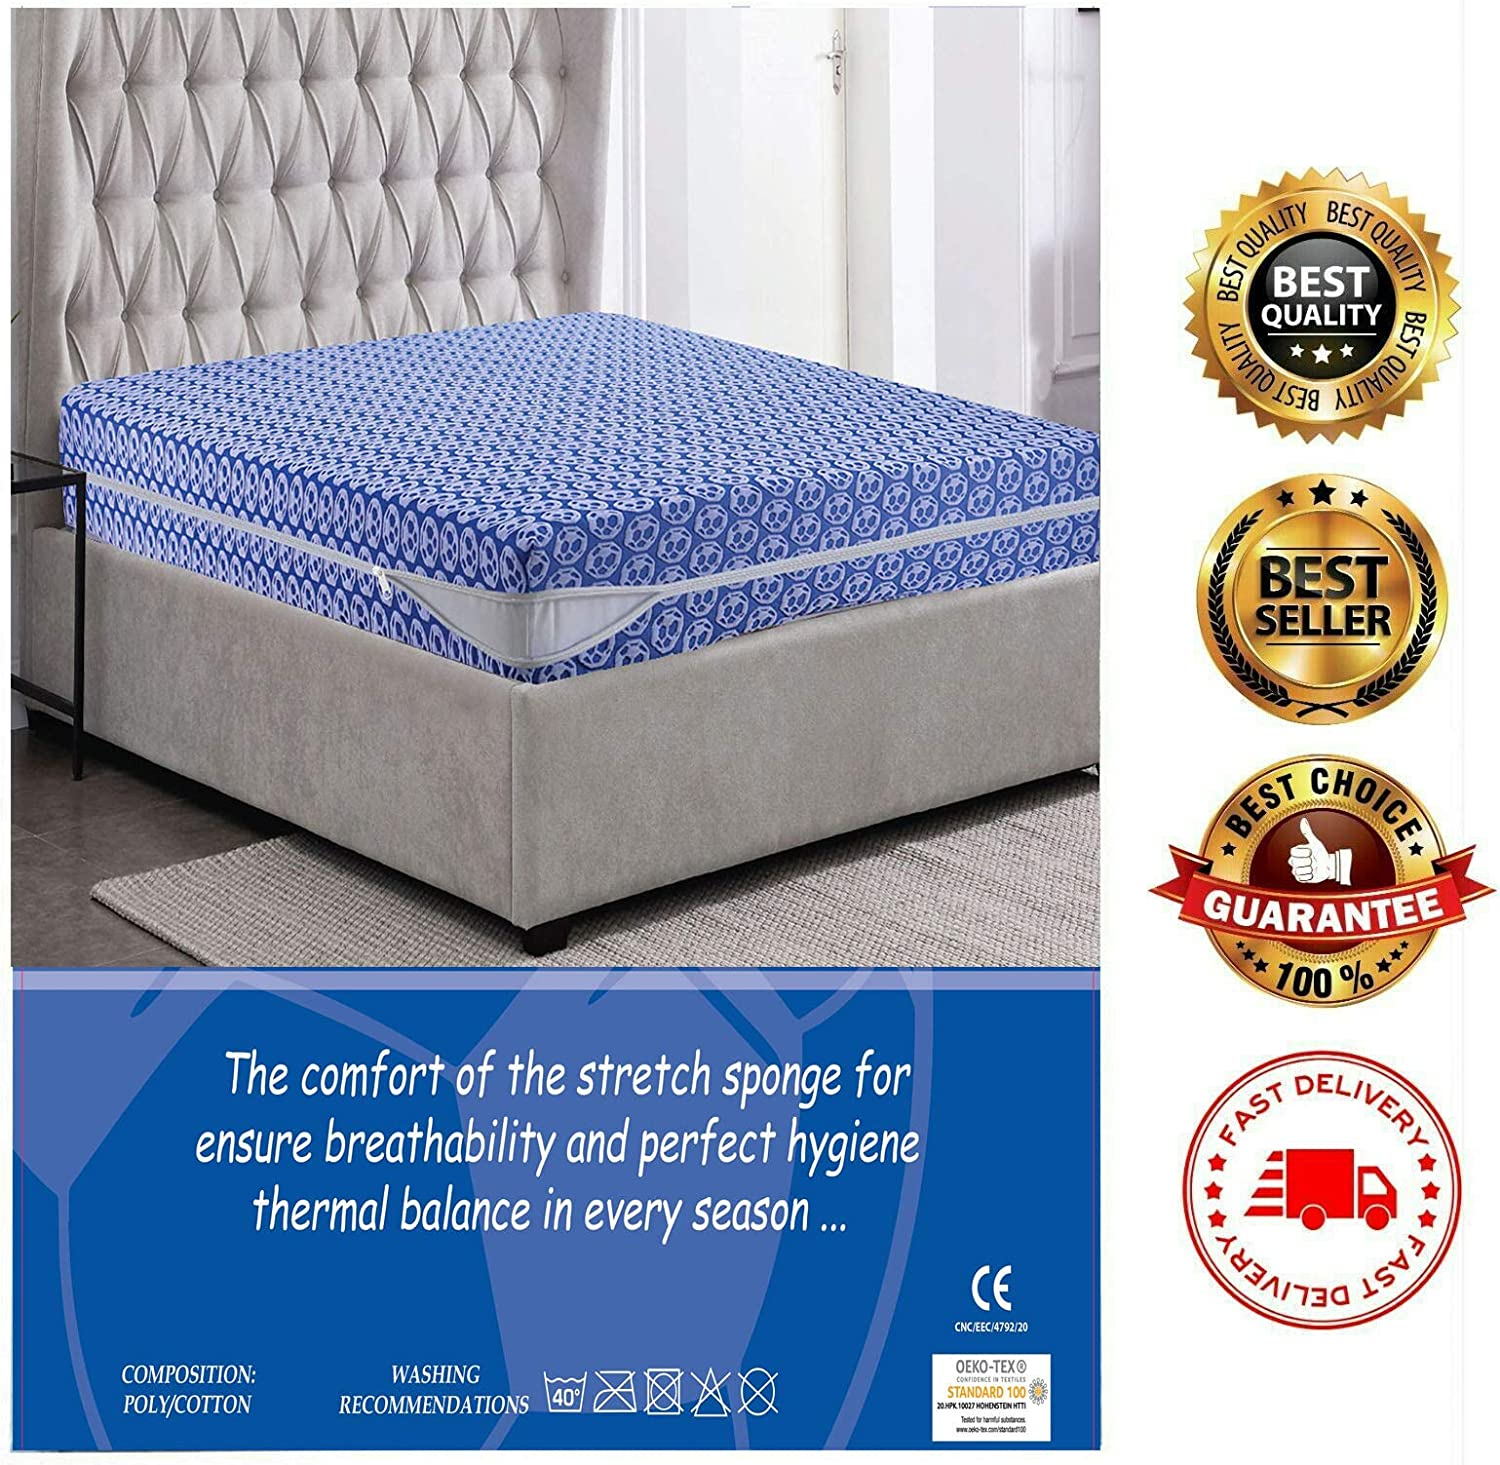 HEAVY DUTY MIA we dress your home LUXURY ANTI BED BUG MATTRESS PROTECTOR ZIPPER COVER 30cm DEEP SKIRT SWEAT PROOF ANTI-ALLERGIC ENCASEMENT DOUBLE SIZE 138 X 190//200 ELASTICATED